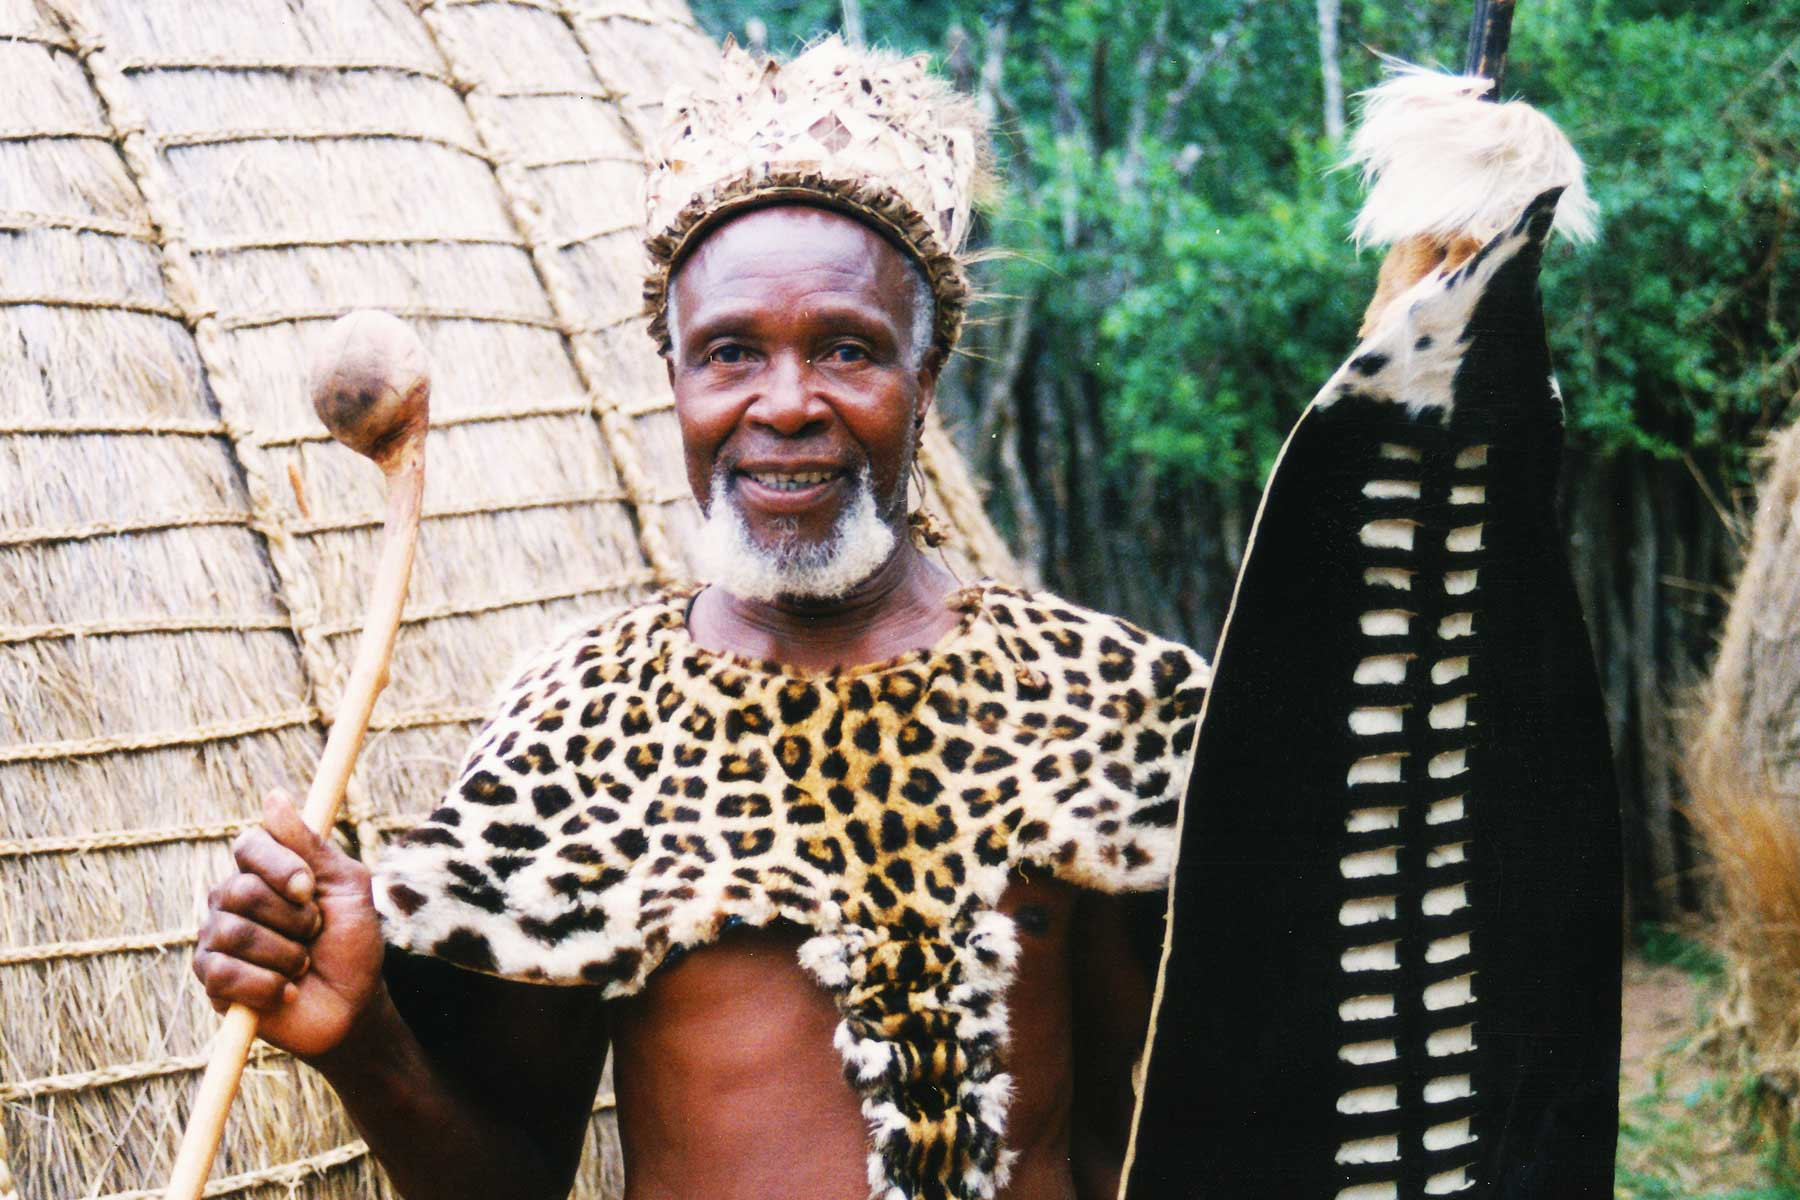 KwaZulu-Natal - Zulu Warrior - Steven Andrew Martin - South Africa Photo Journal - Zulu cultural park - Dr. Steven Martin